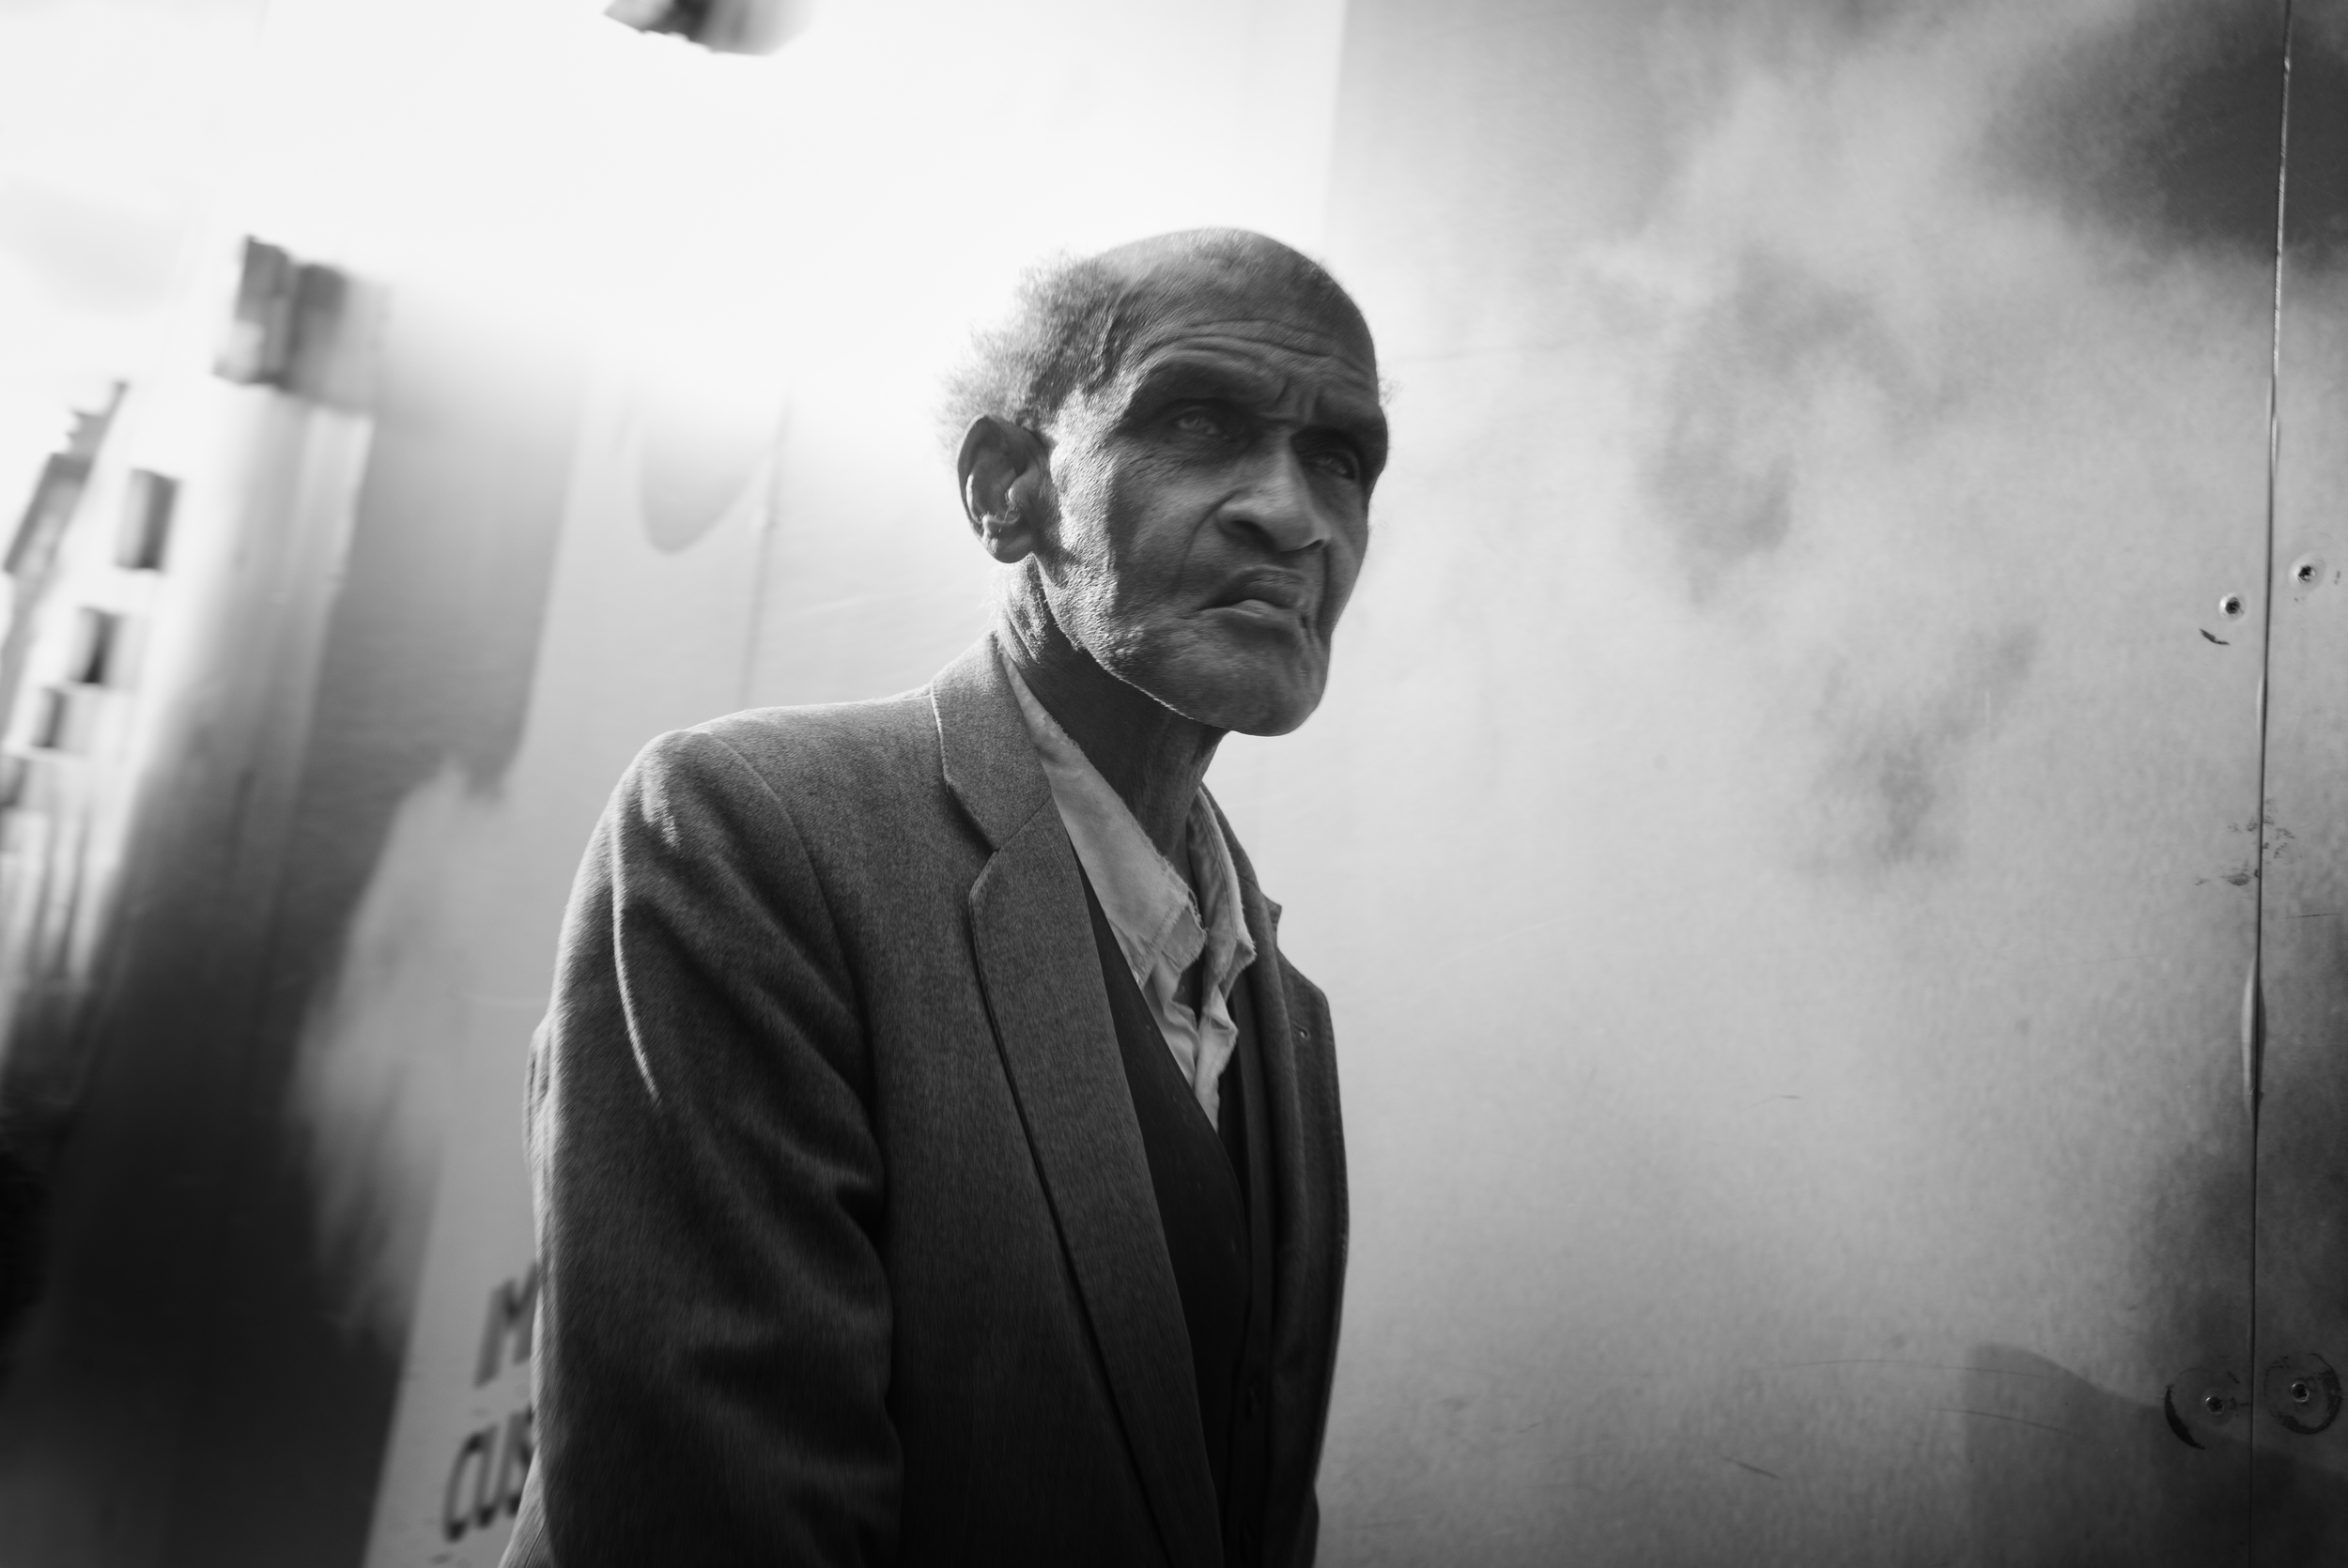 The old man, London, 2015